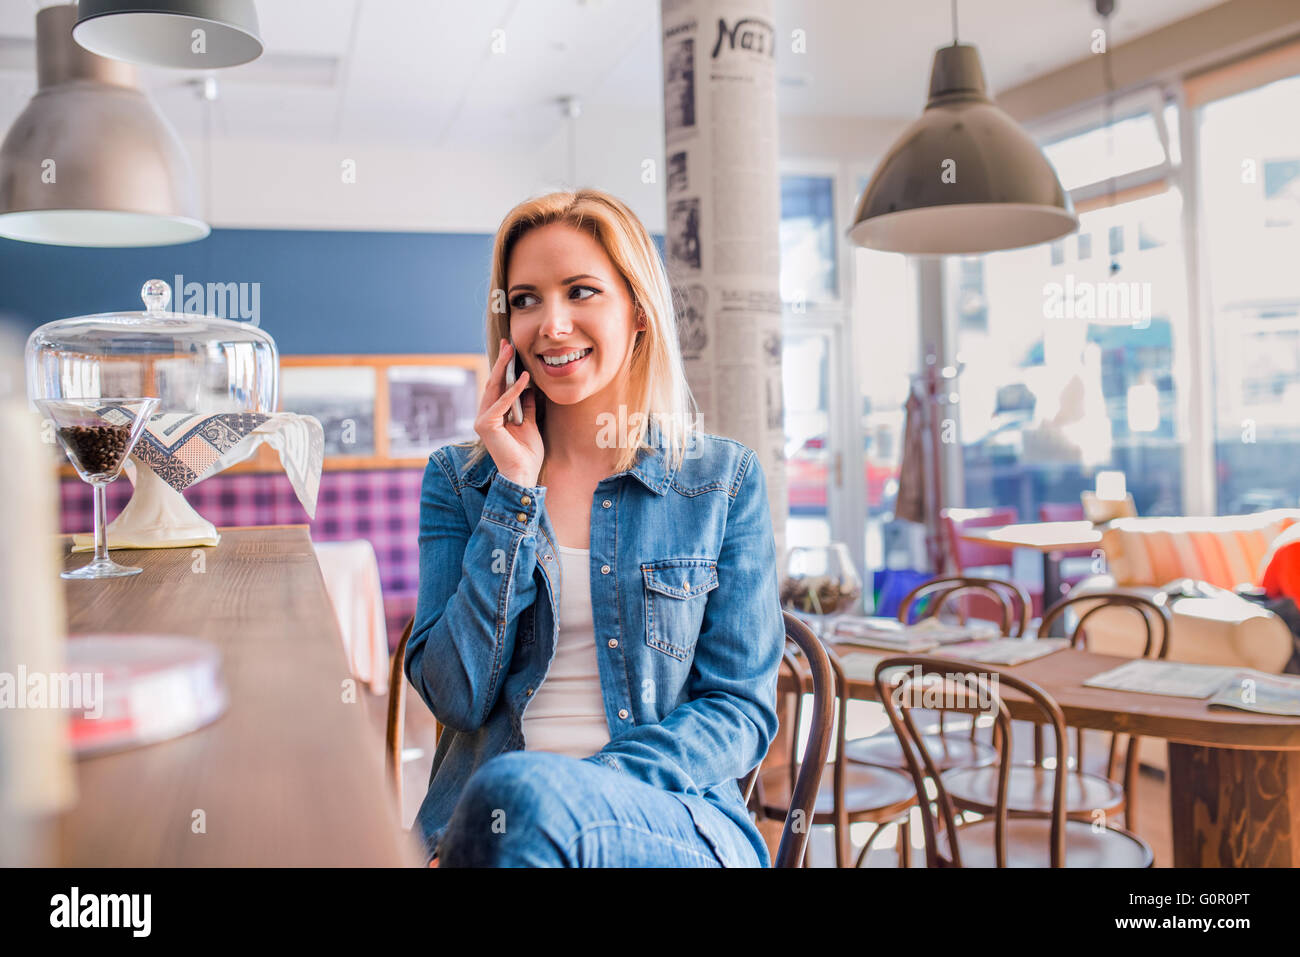 Blond woman sitting at the bar, talking on phone - Stock Image